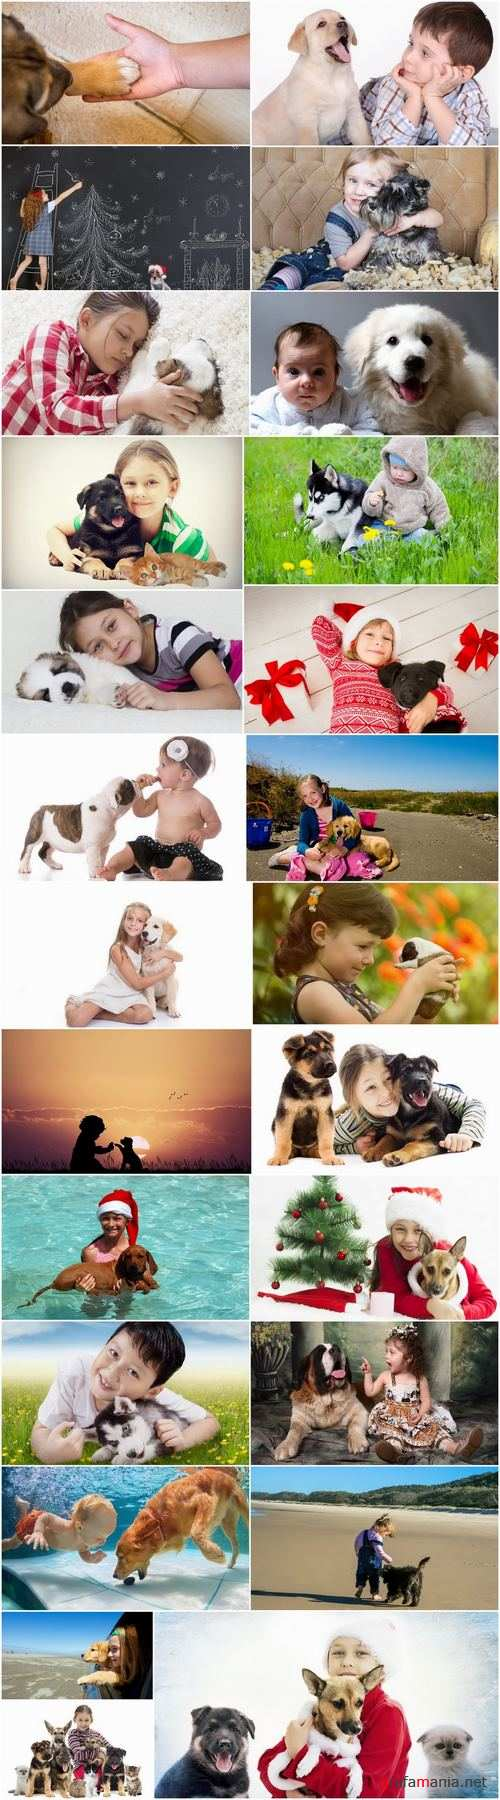 Children baby boy girl puppy dog kitten cat 25 HQ Jpeg